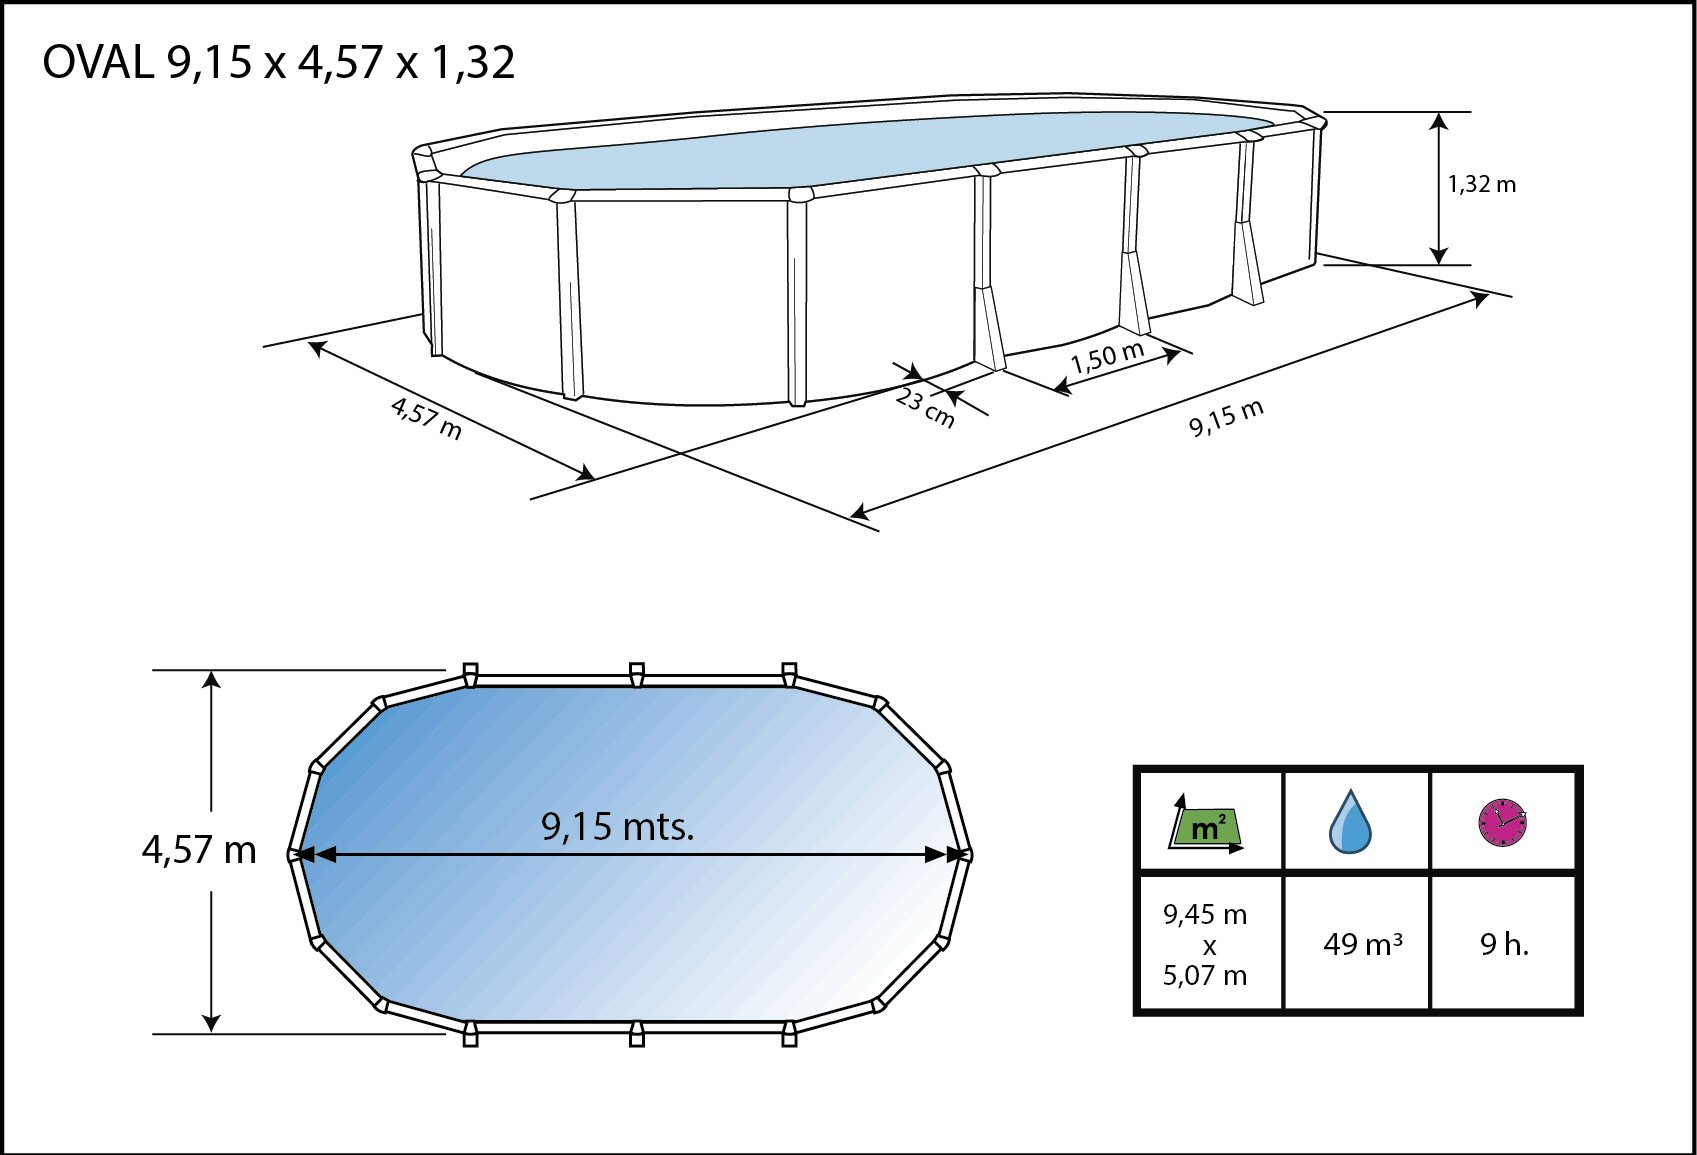 Buttress Free Oval Pool - 6.40m x 3.66m x 1.32m